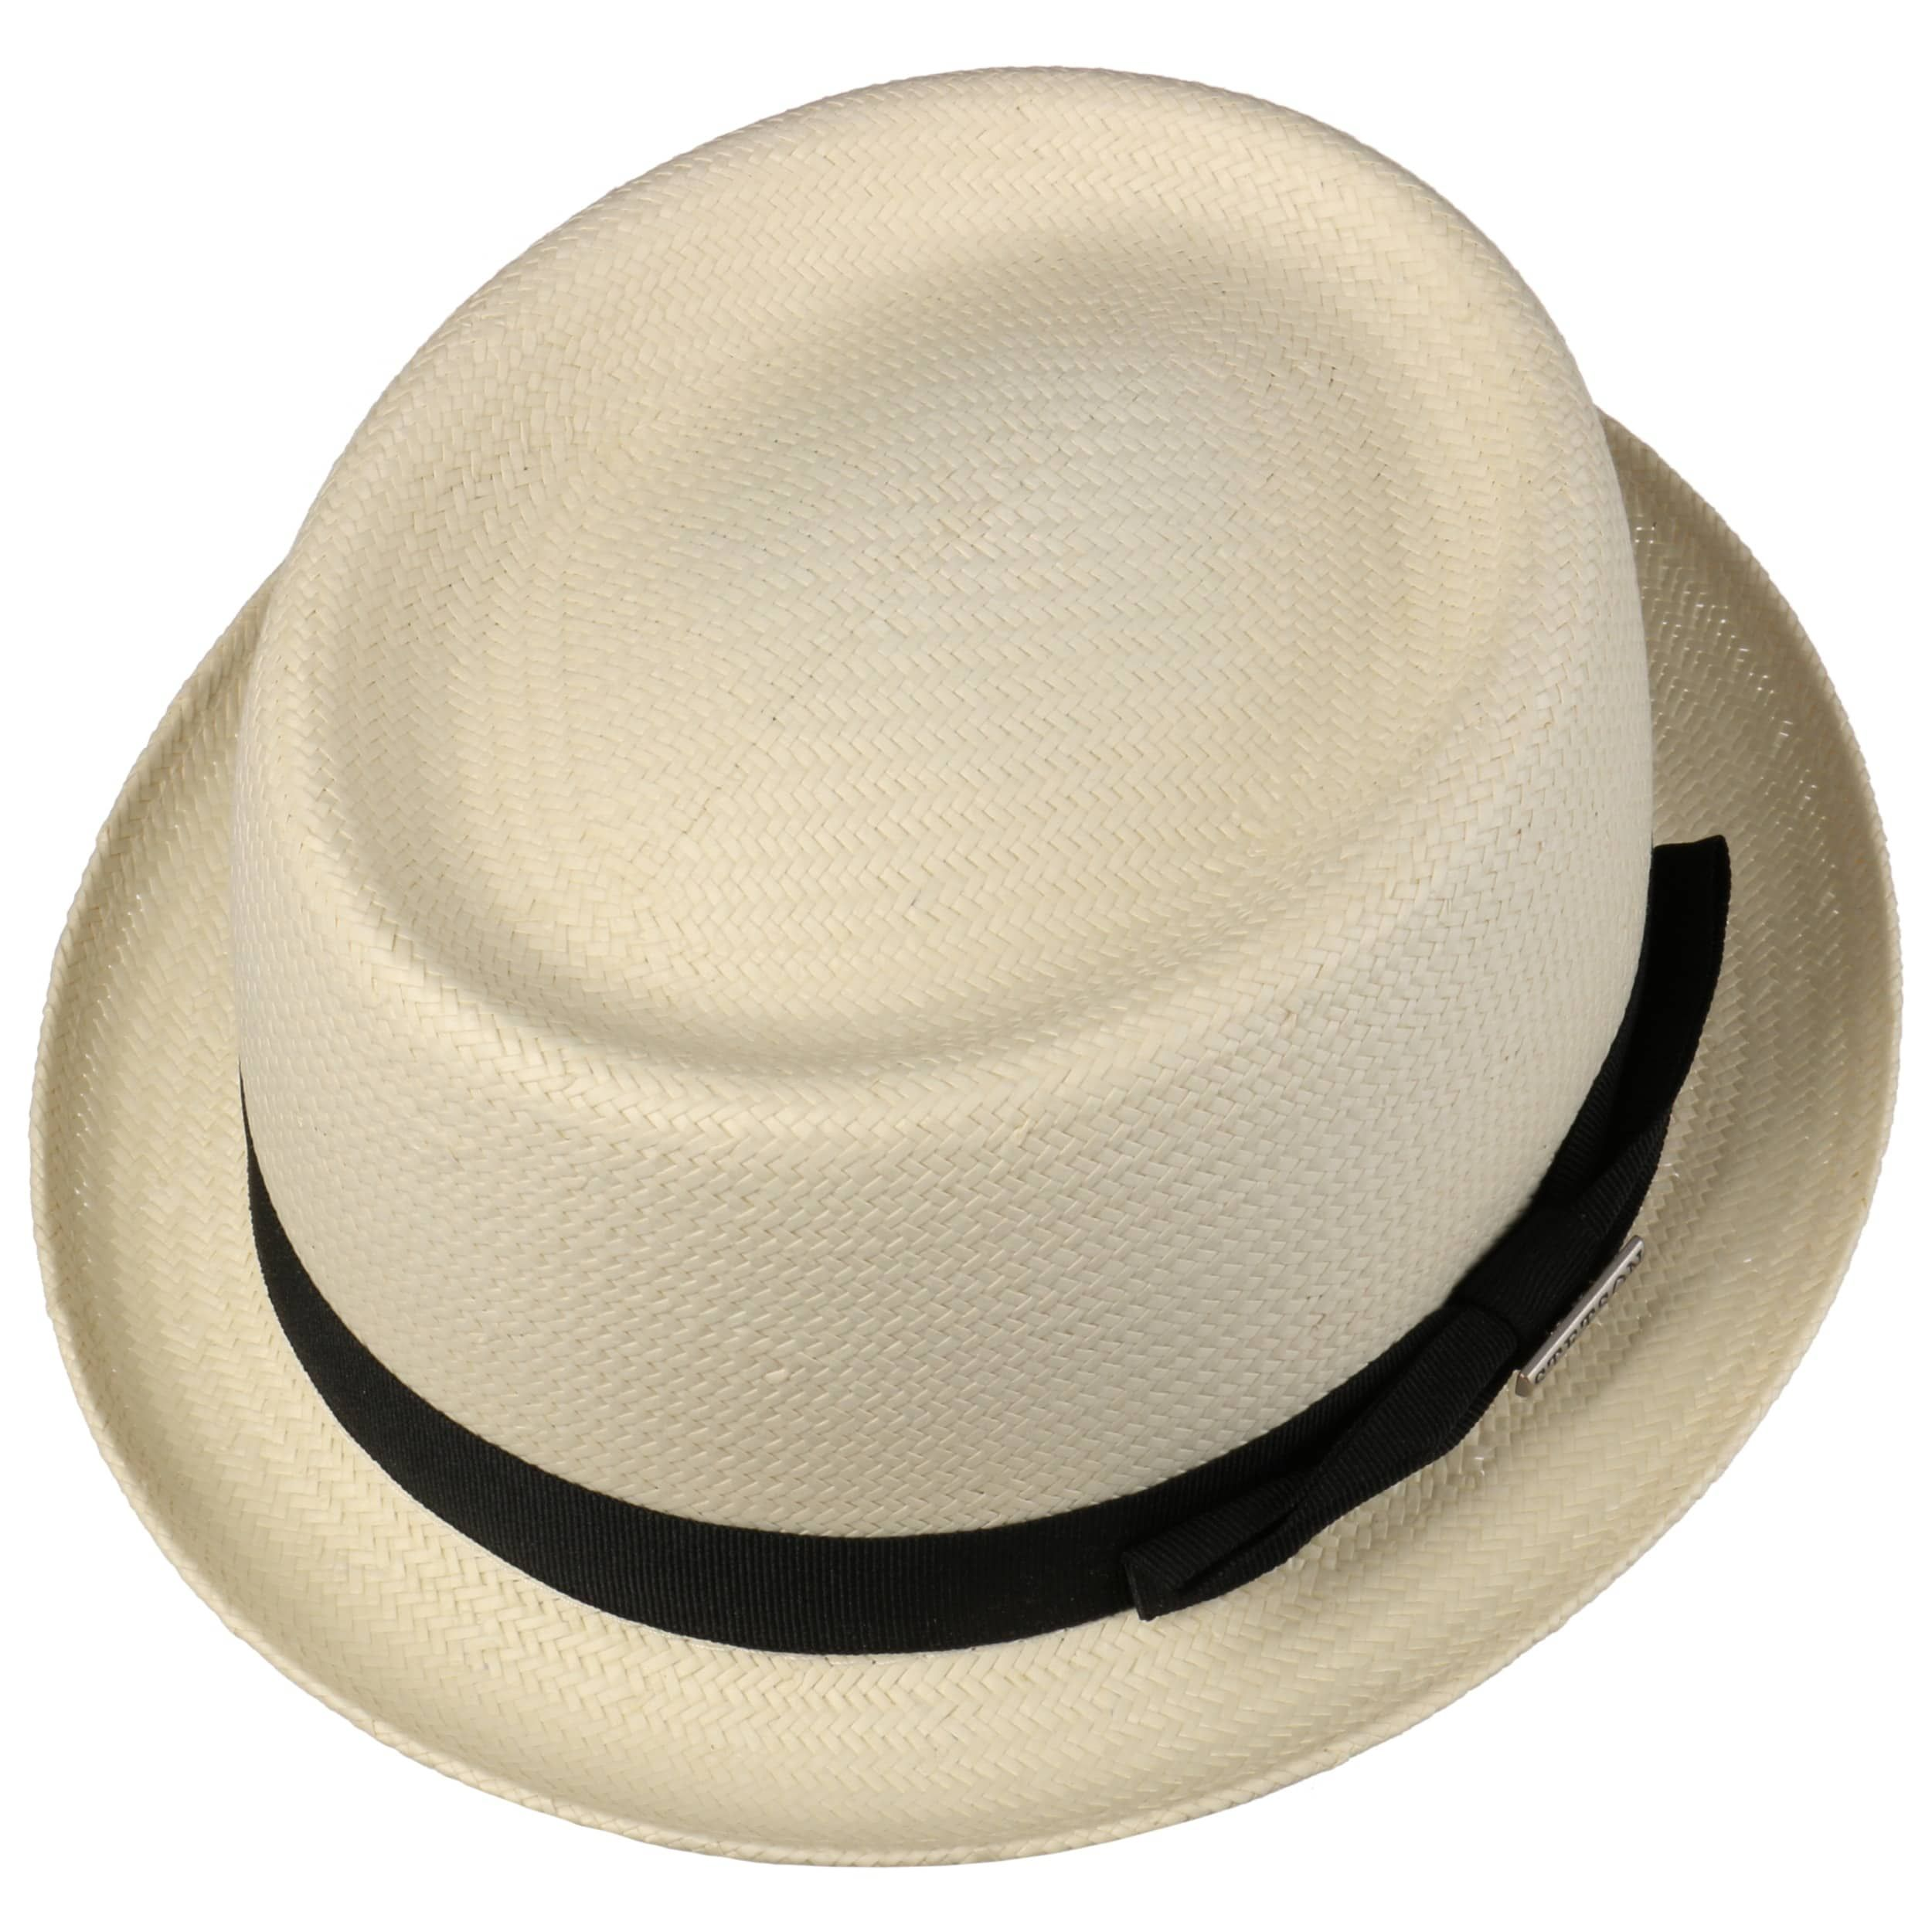 Classic Toyo Pork Pie Straw Hat nature